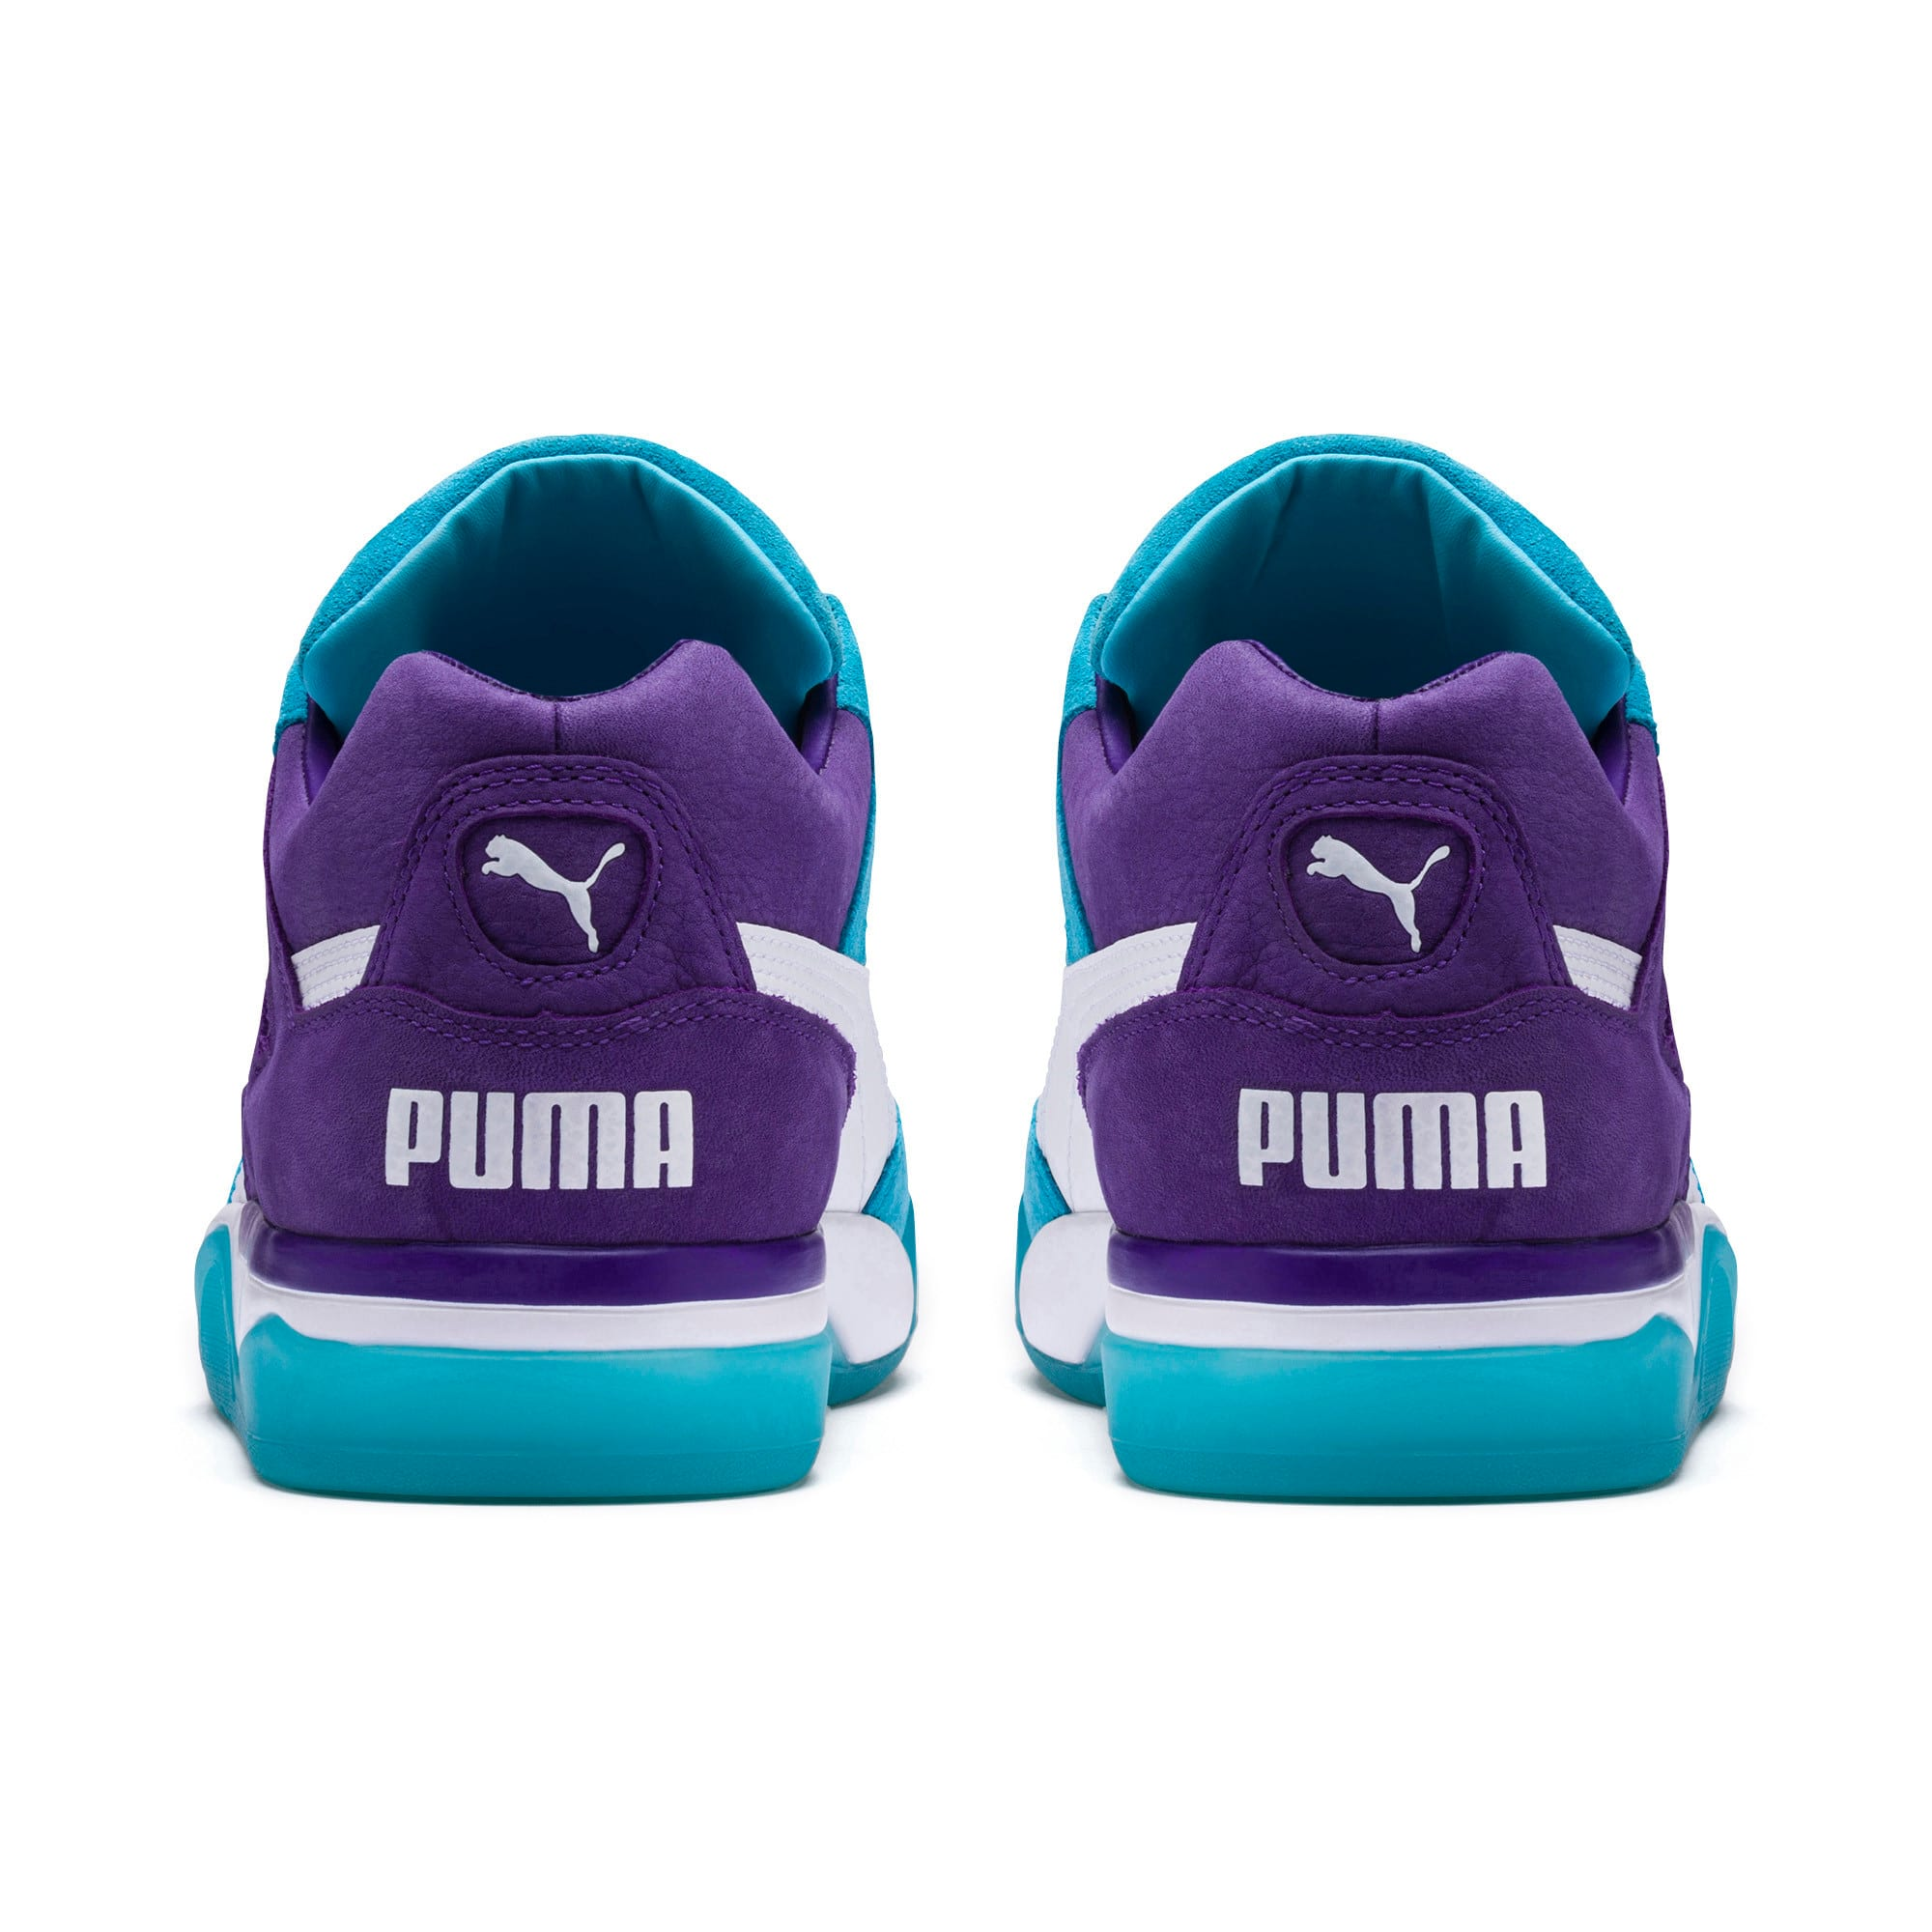 Thumbnail 3 of Palace Guard Queen City Sneakers, Blue Atoll-Prism Violet, medium